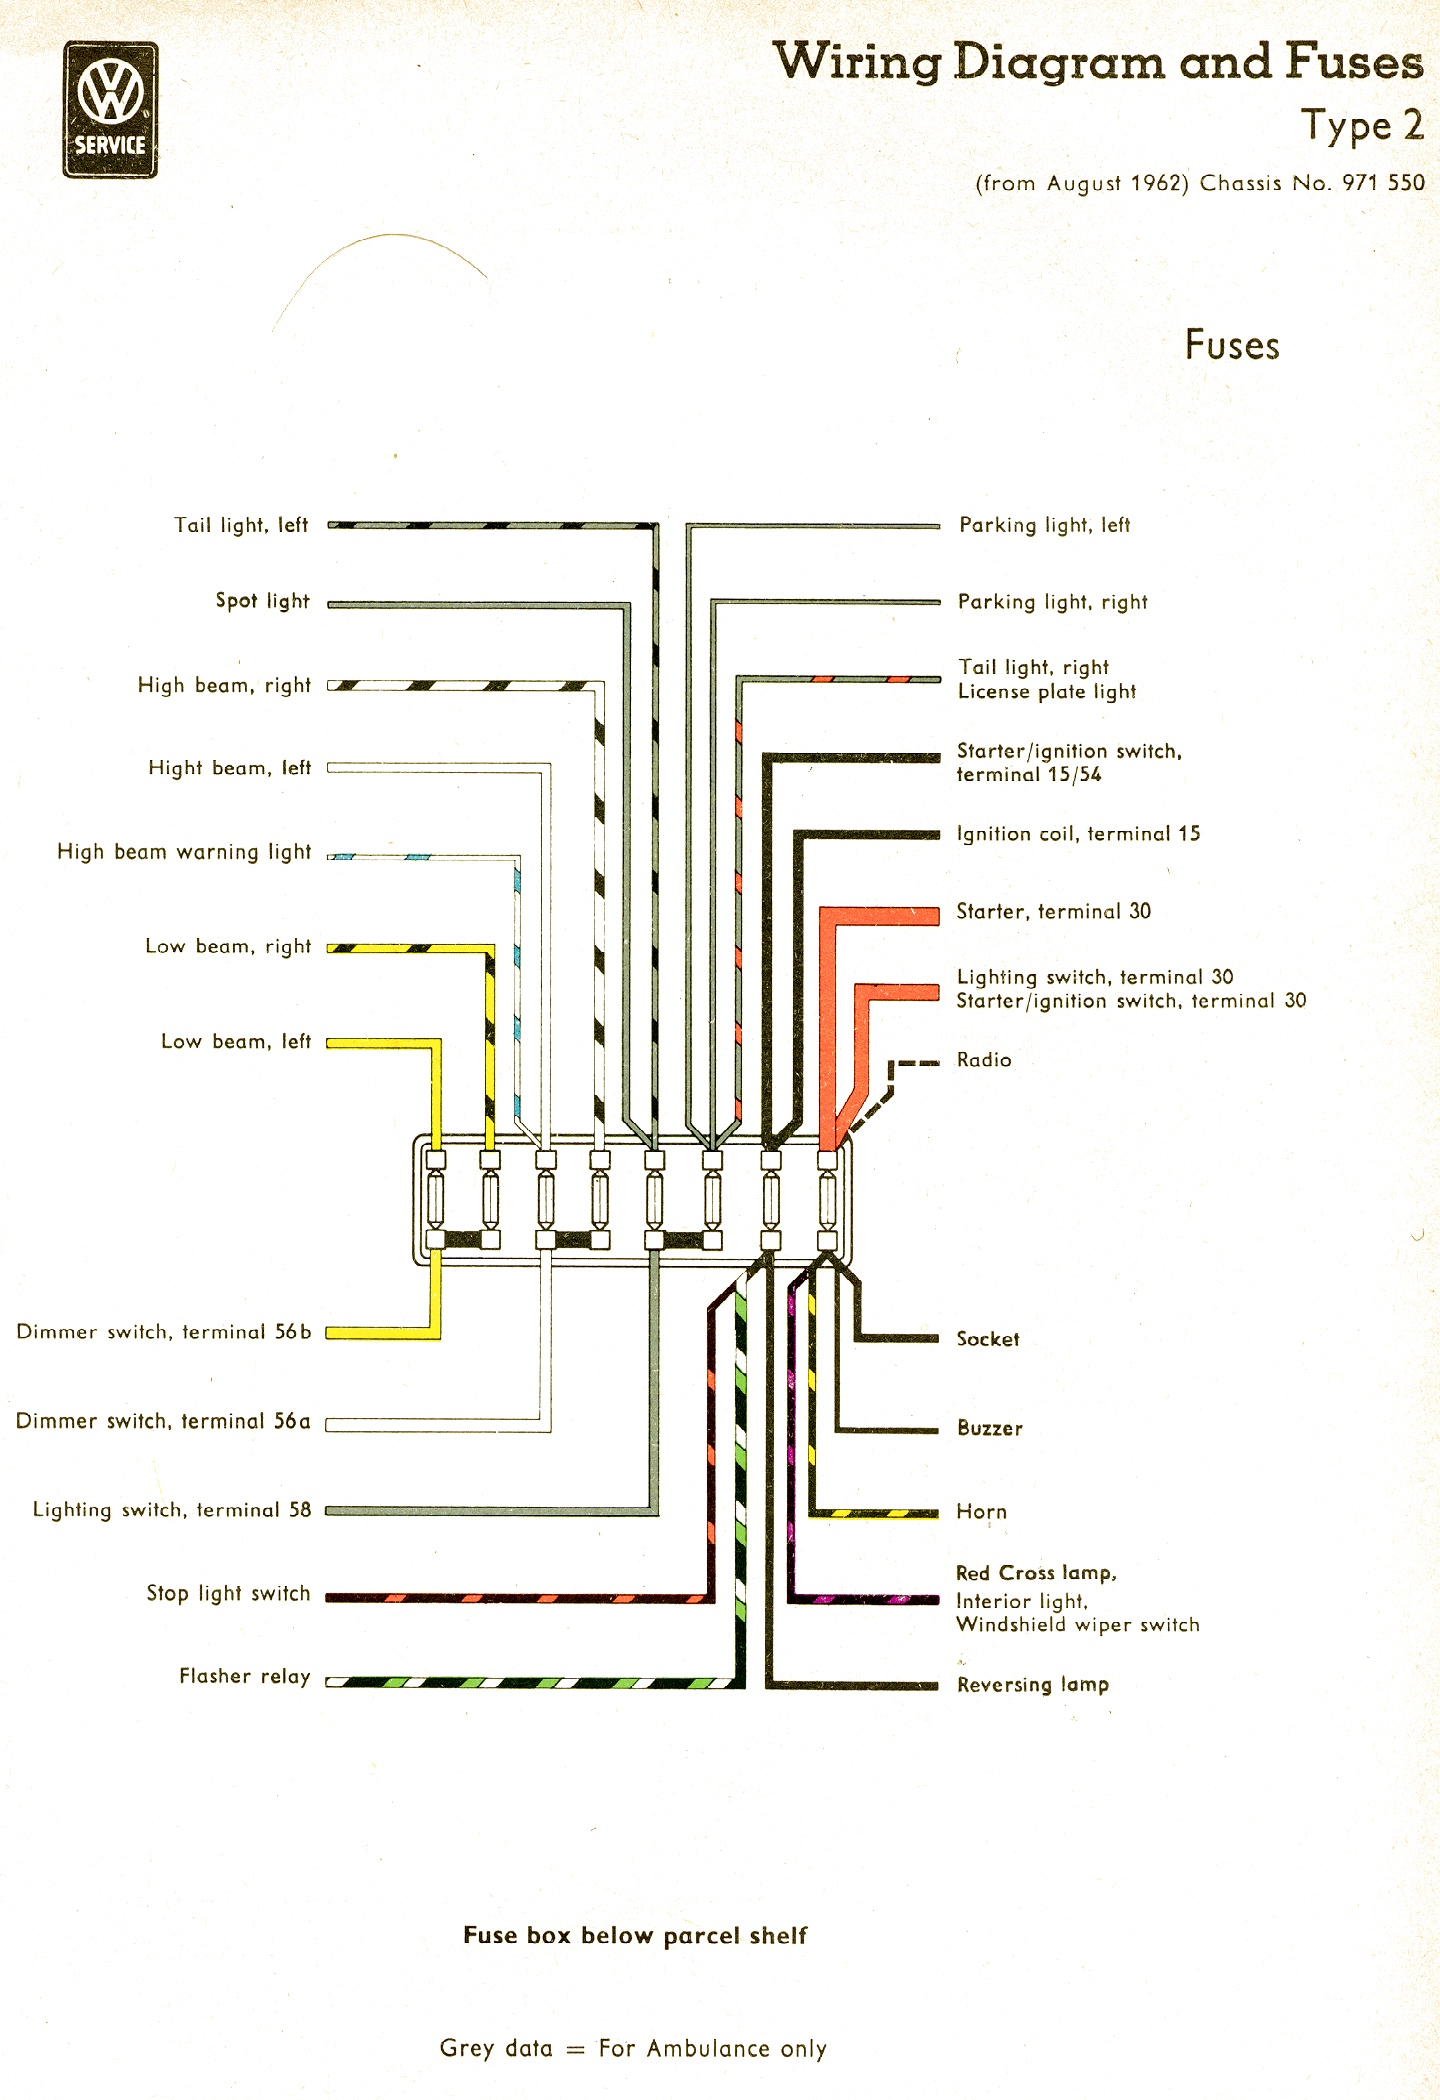 ambulance disconnect switch wiring diagram wiring library vintagebus com vw bus and other wiring diagrams rh vintagebus com double pole switch wiring diagram disconnect ambulance